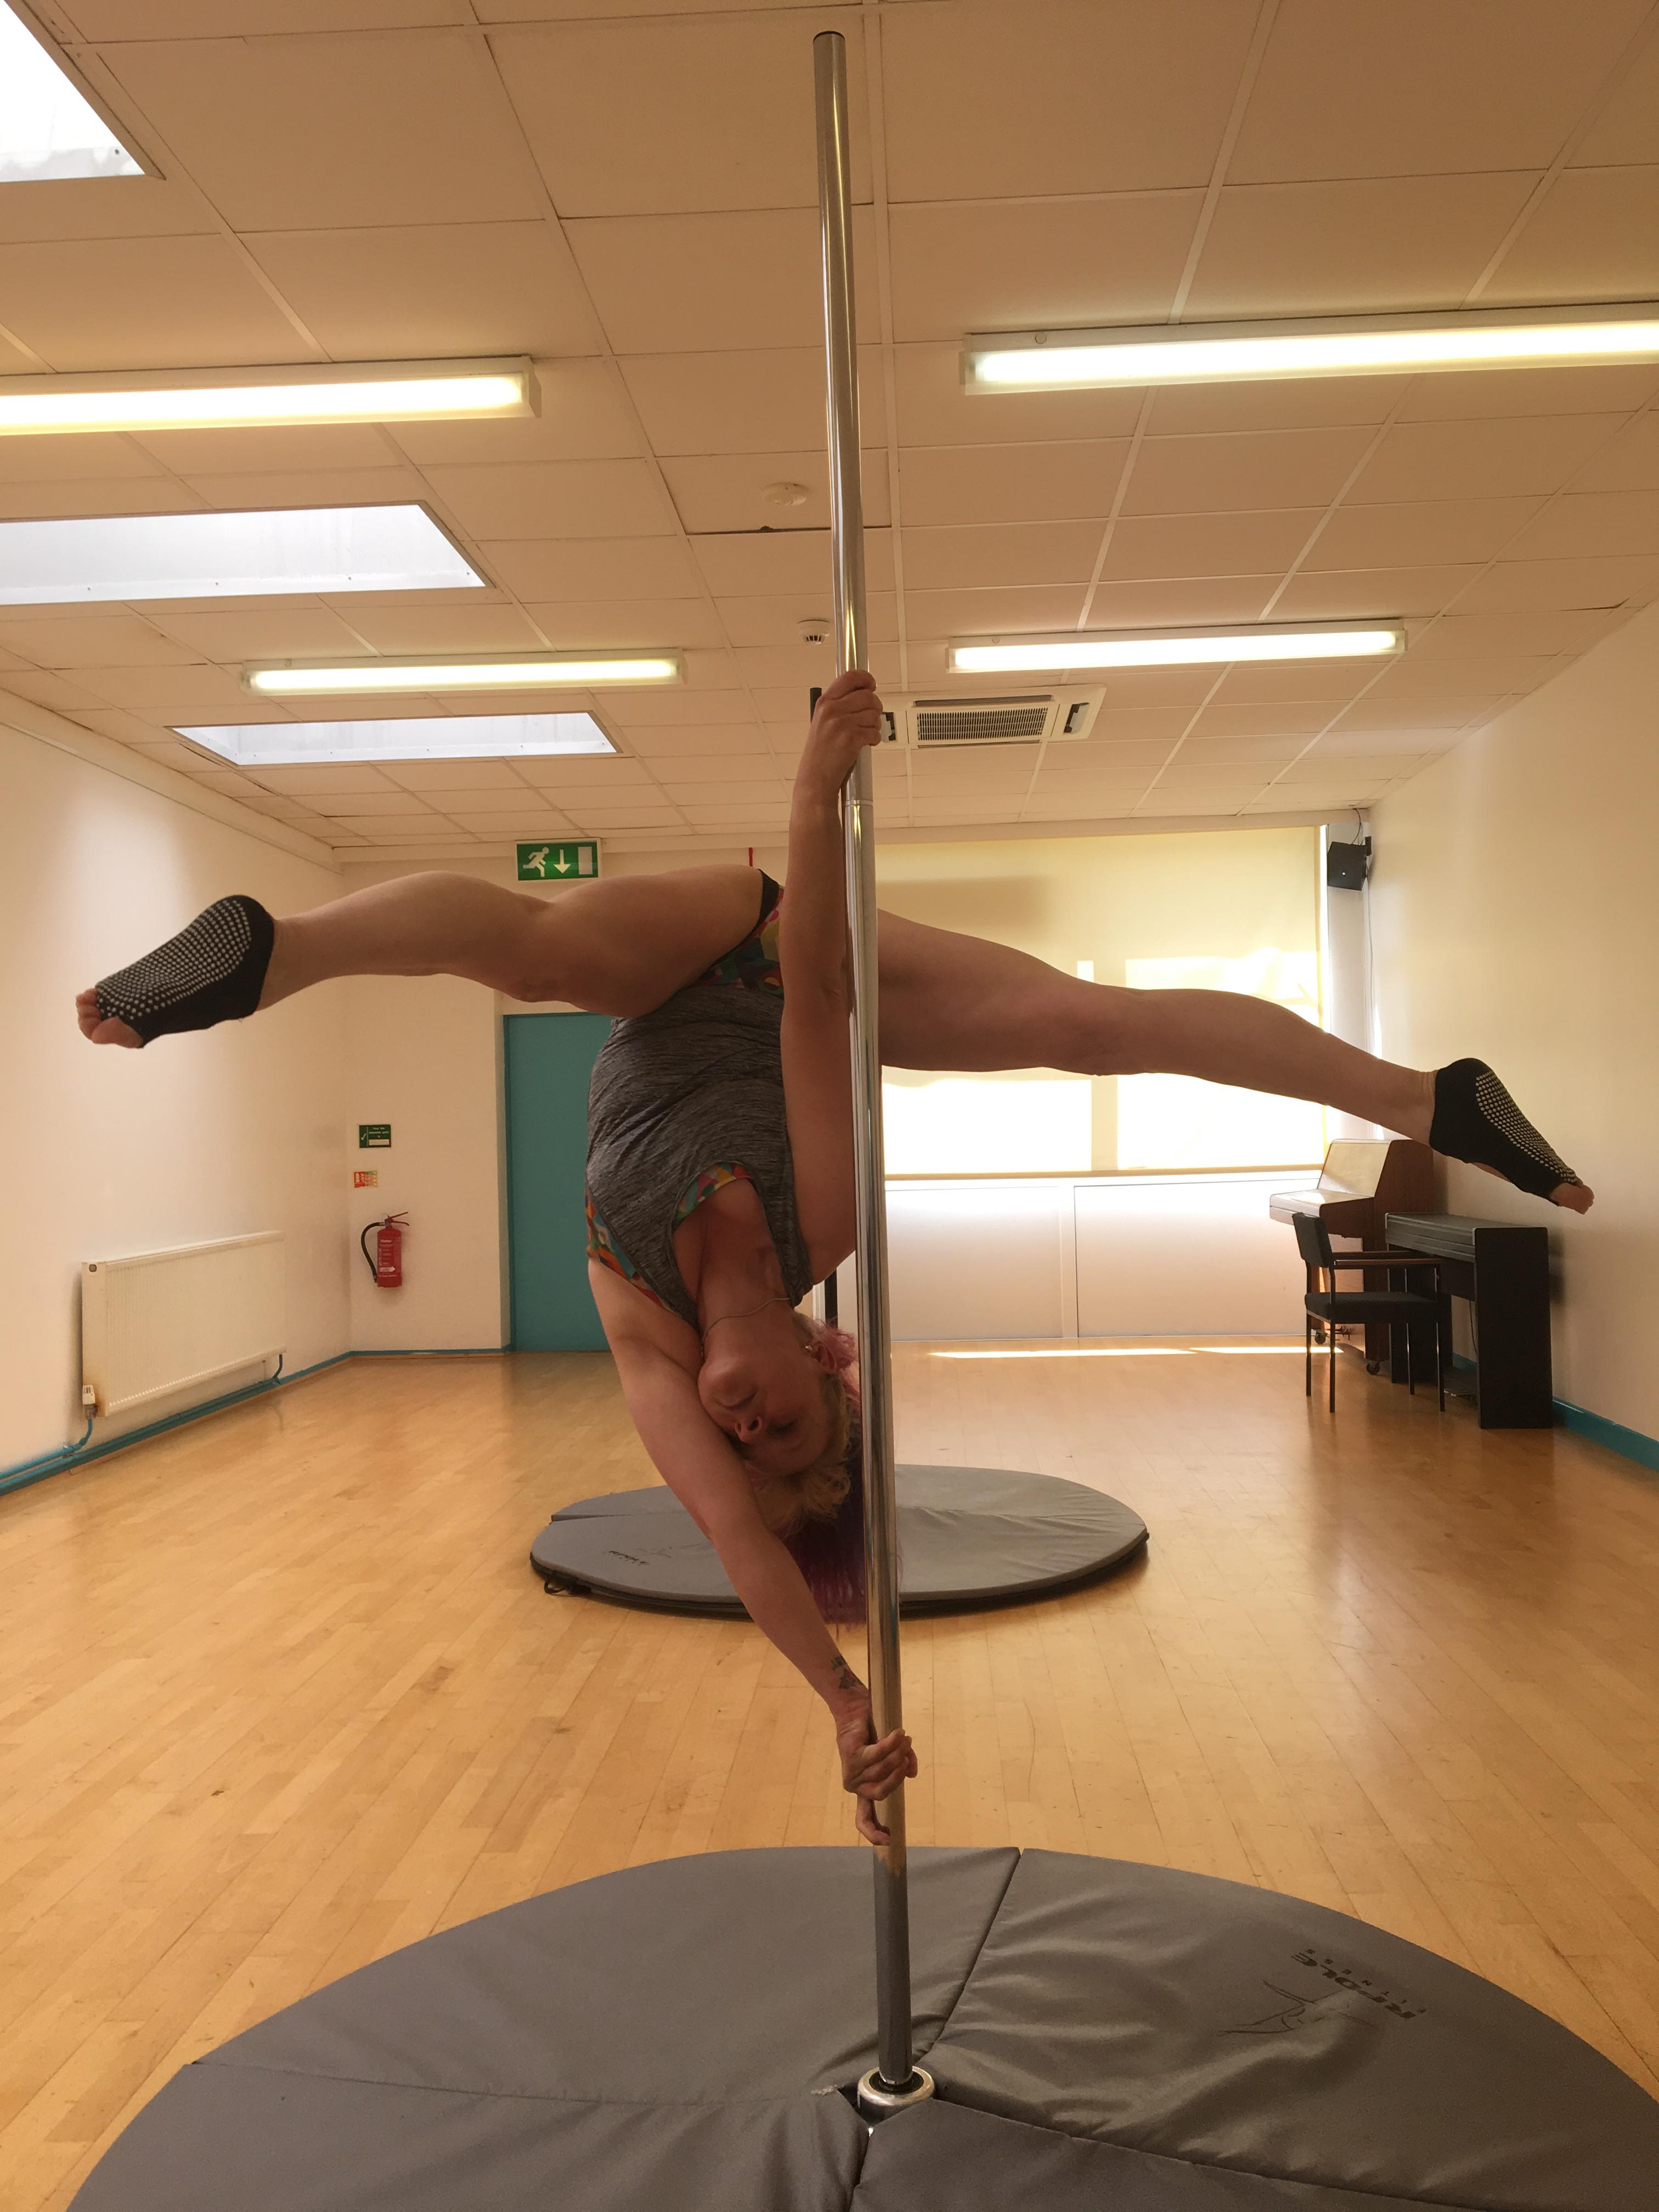 Pole-fitness-littlehampton-5